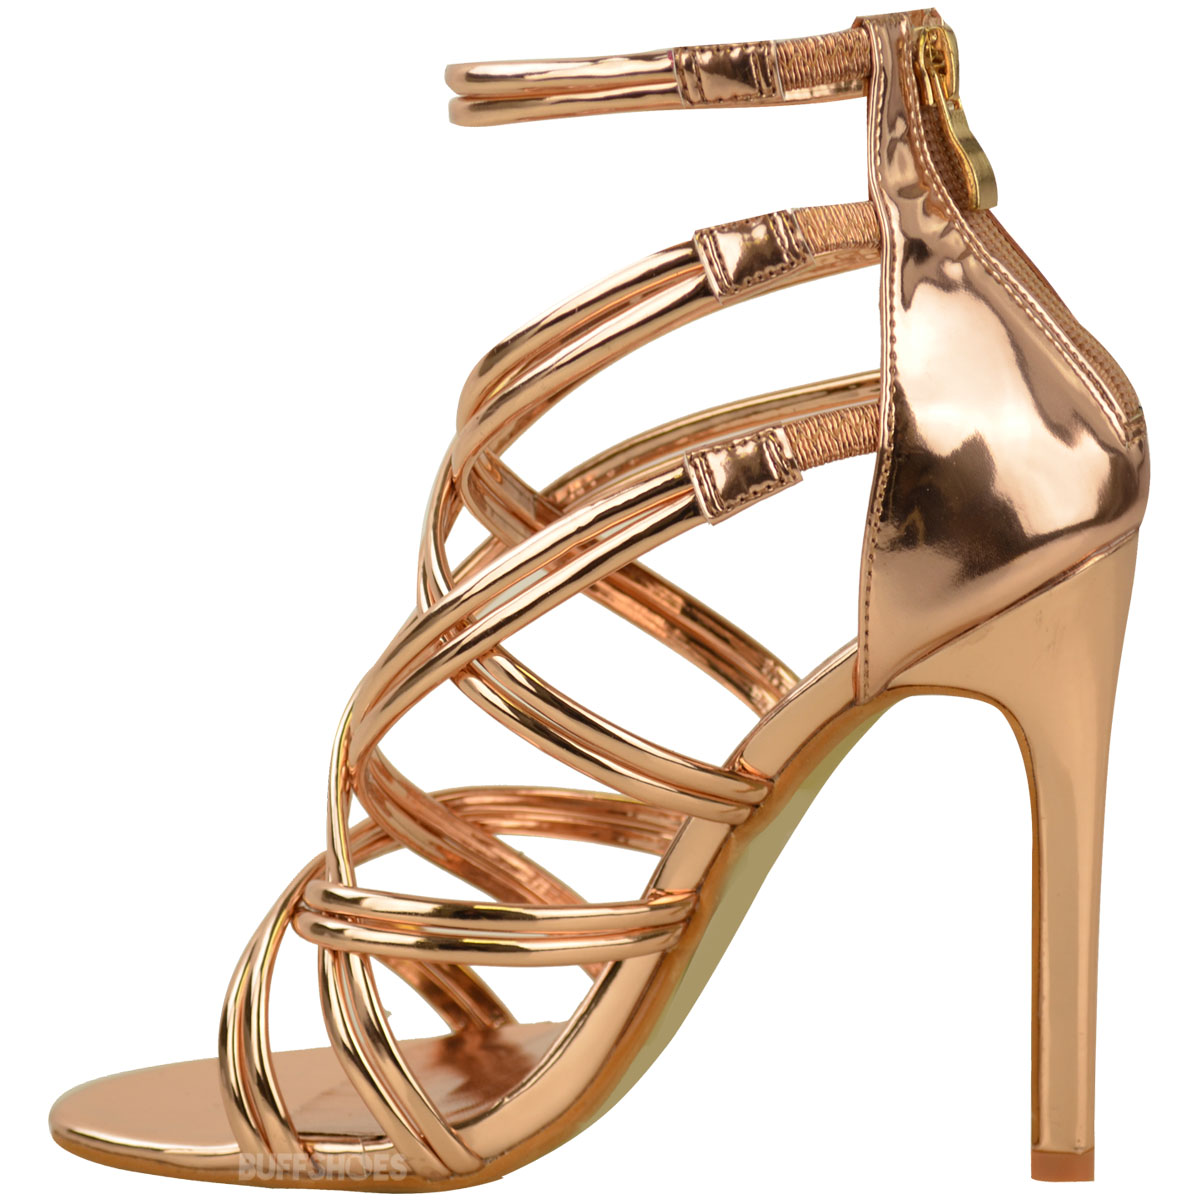 b5ca5e15249 Womens Ladies Rose Gold Strappy Party Sandals High Heel Prom ...